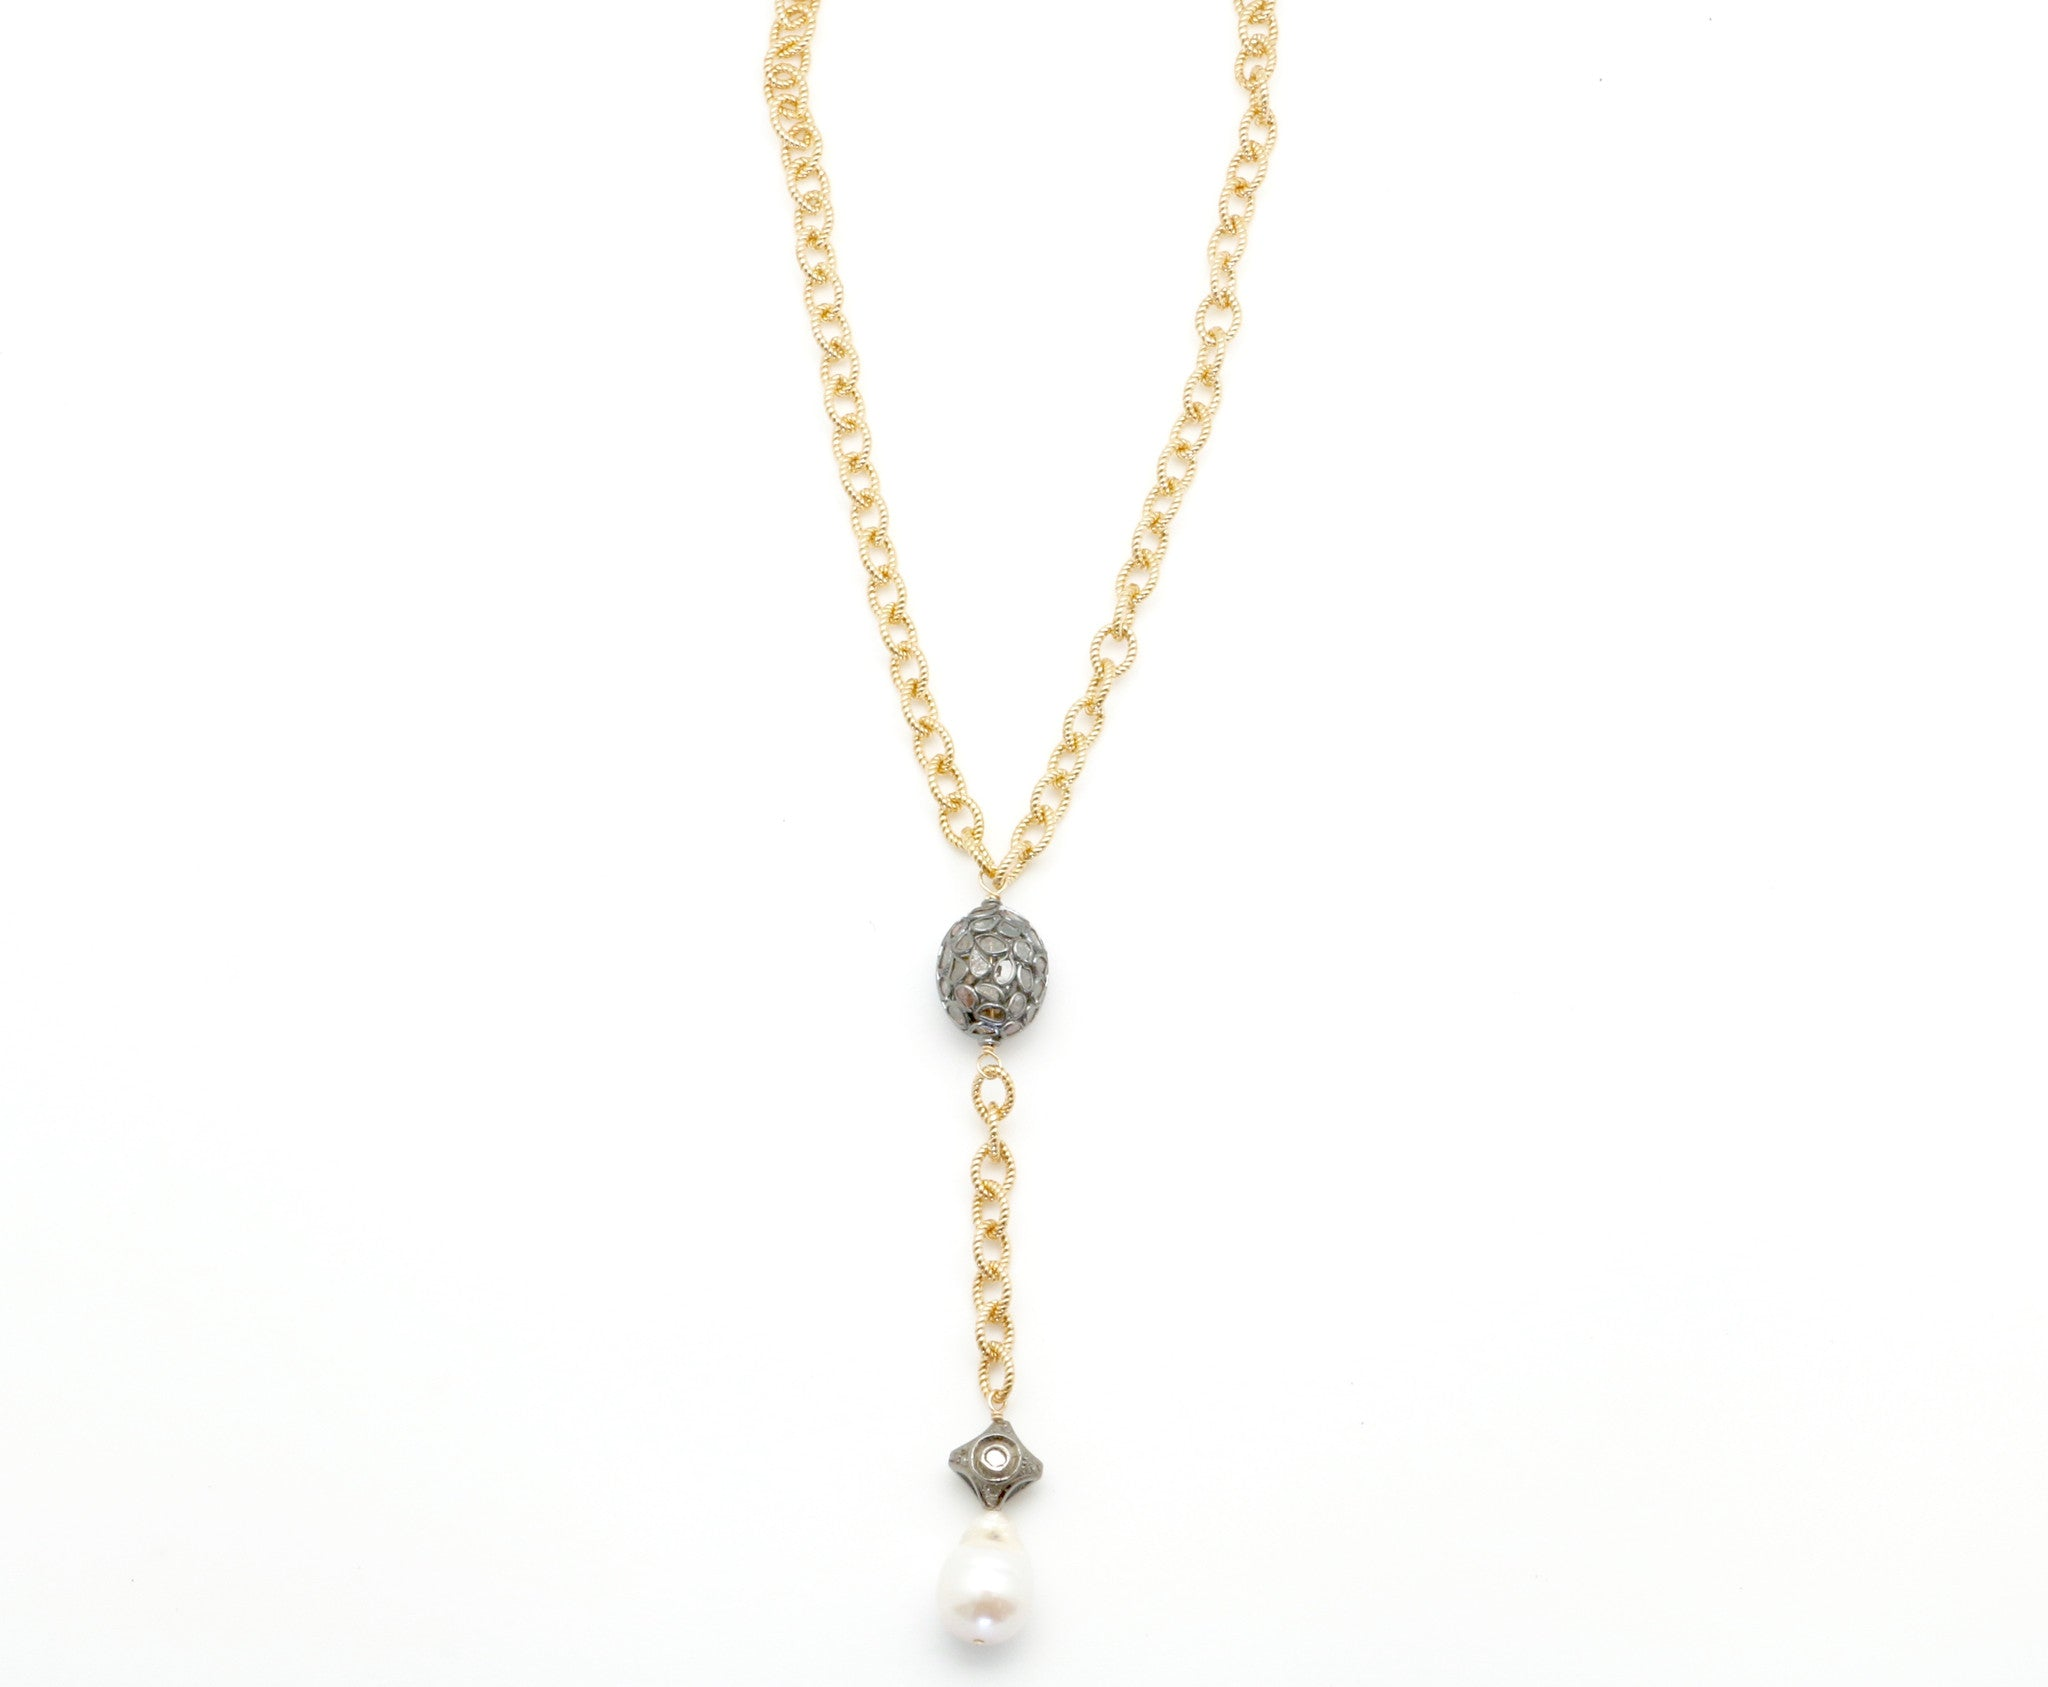 GOLD CHAIN LARIAT WITH DIAMOND PENDANT